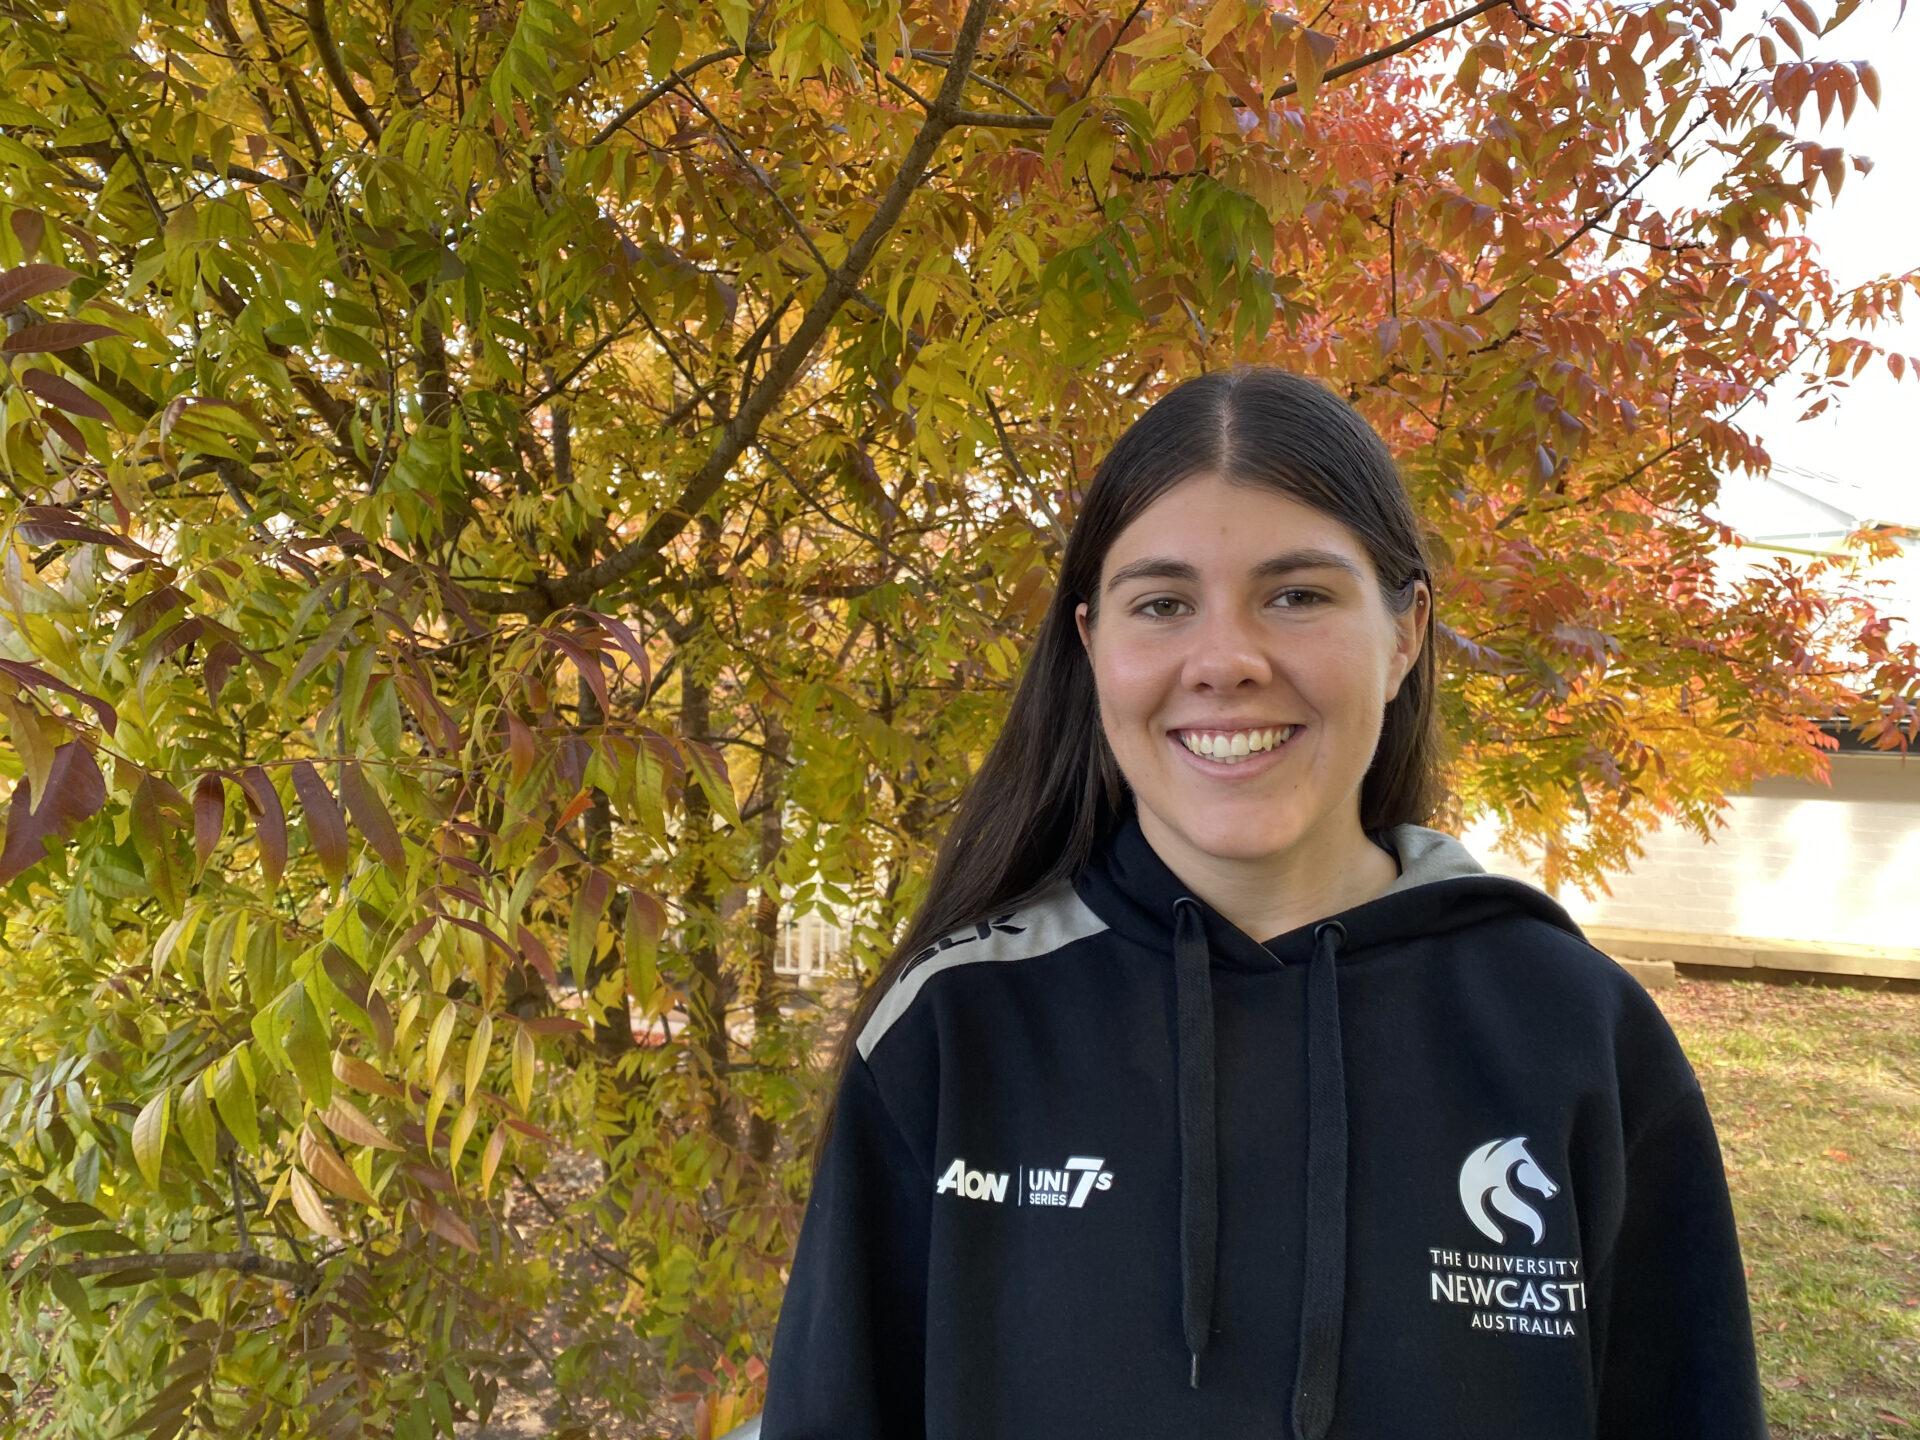 Clare Harpley, UNE Student and Elite Athlete standing in front of a tree smiling